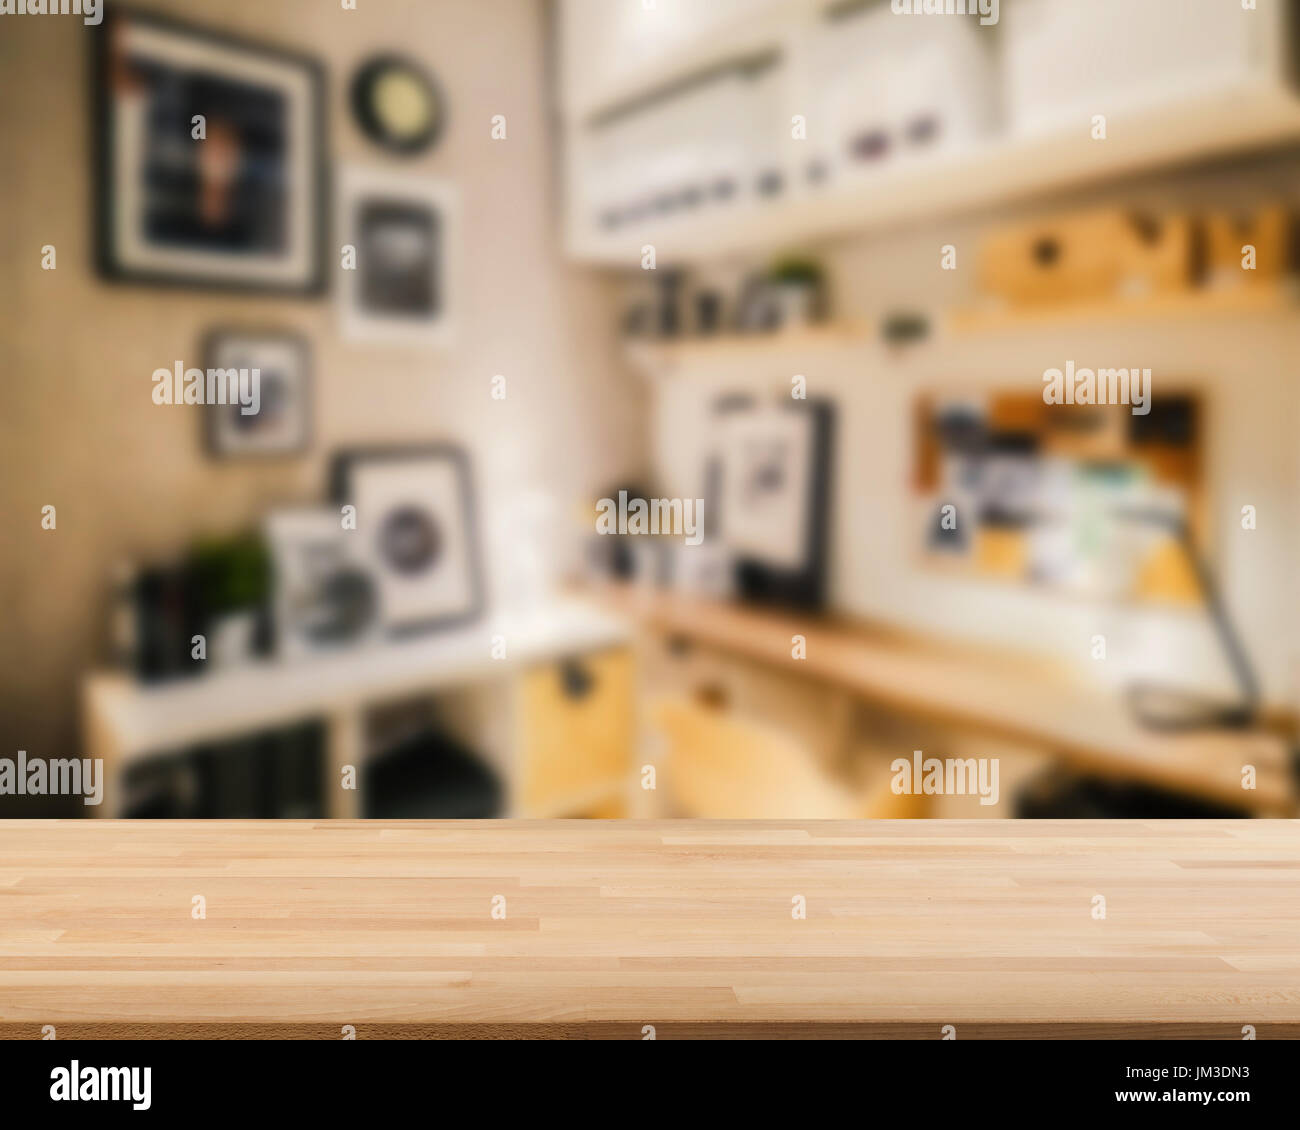 wooden countertop with workspace blurred background - Stock Image